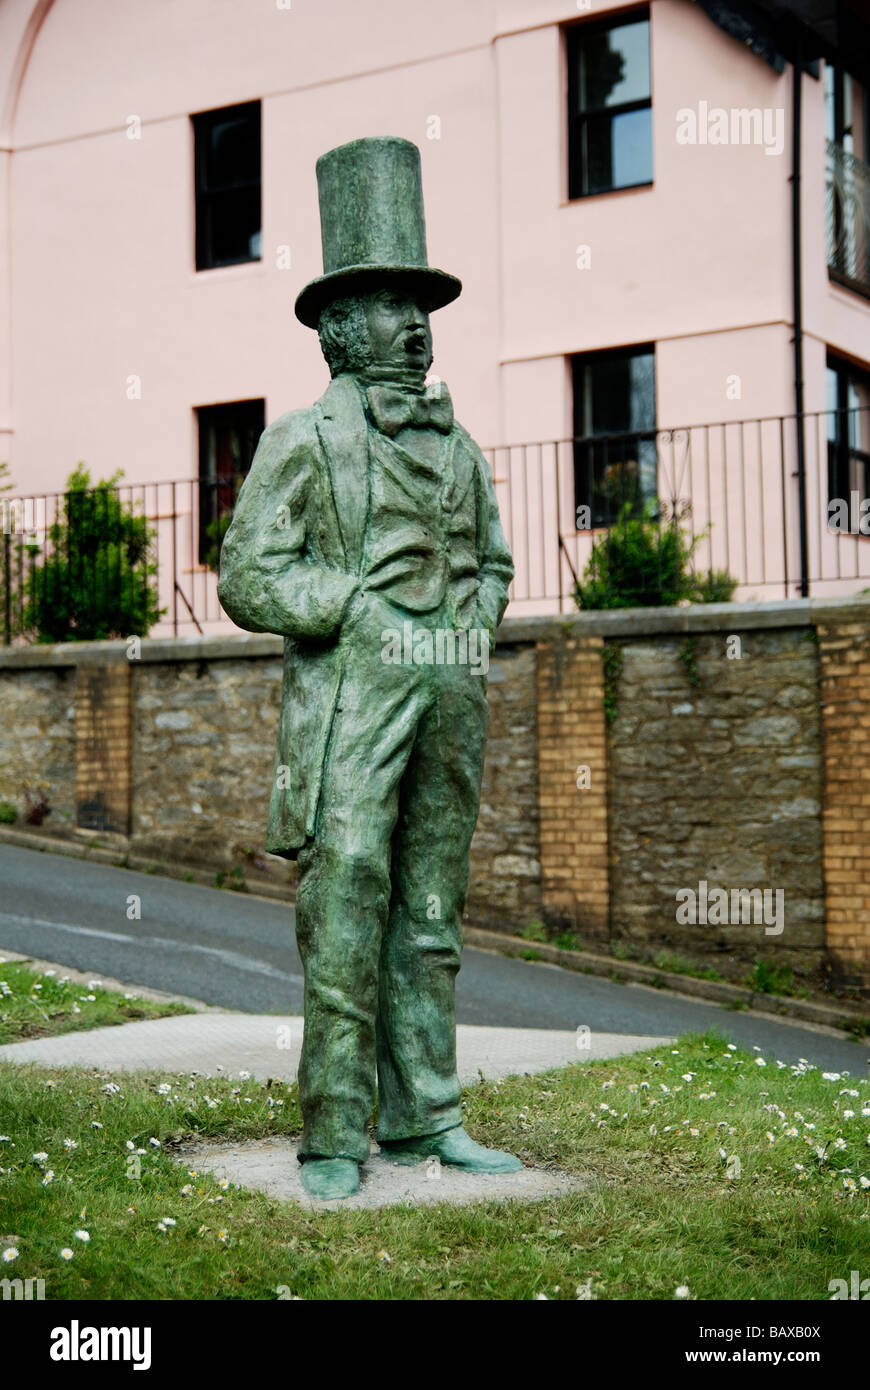 the statue of Isambard Kingdom Brunel is at the Saltash side of the bridge in cornwall,uk - Stock Image